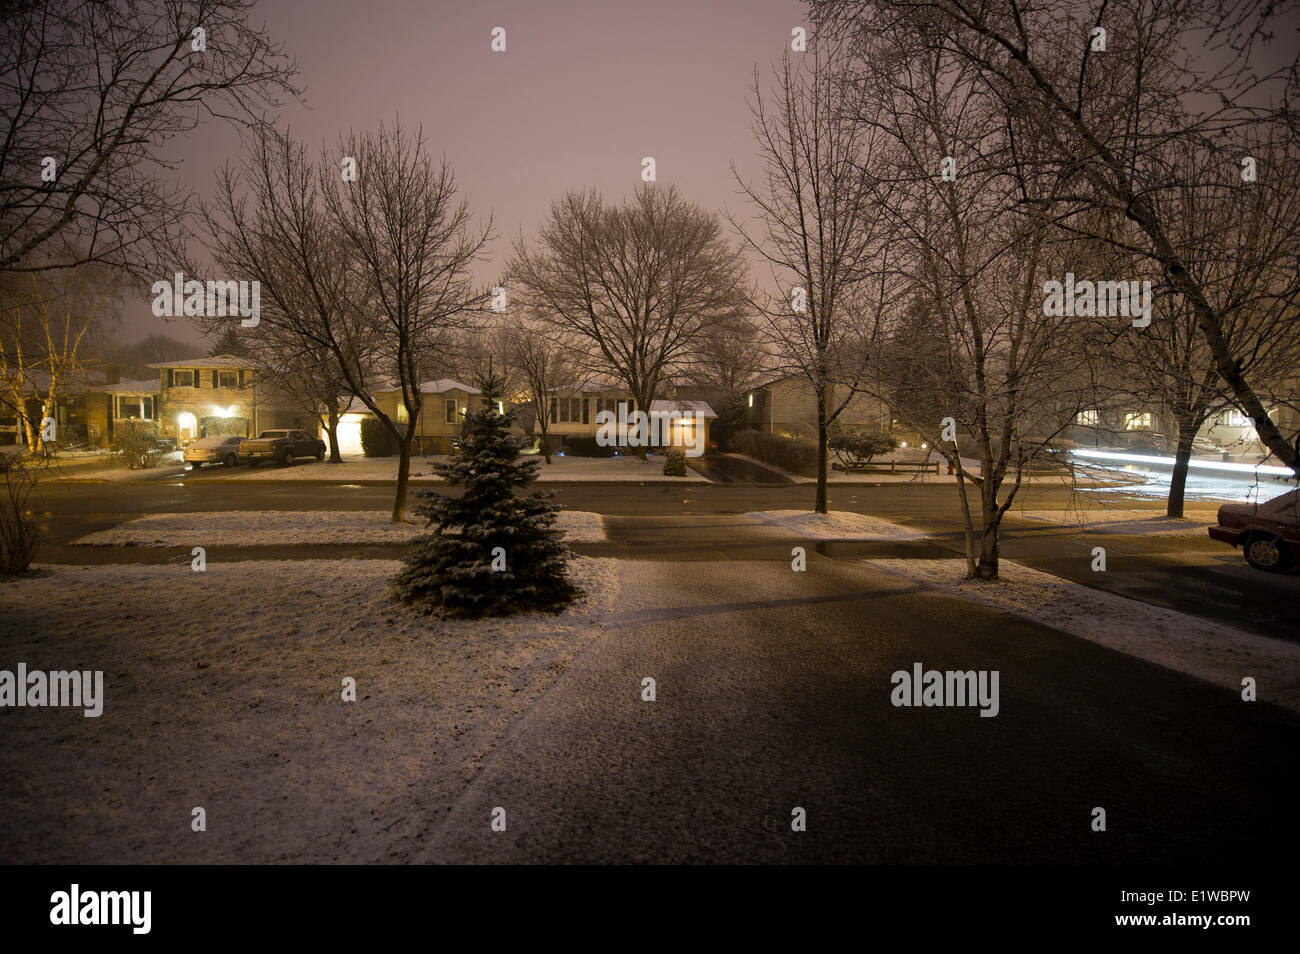 Suburban street at night. Oakville, Ontario, Canada - Stock Image